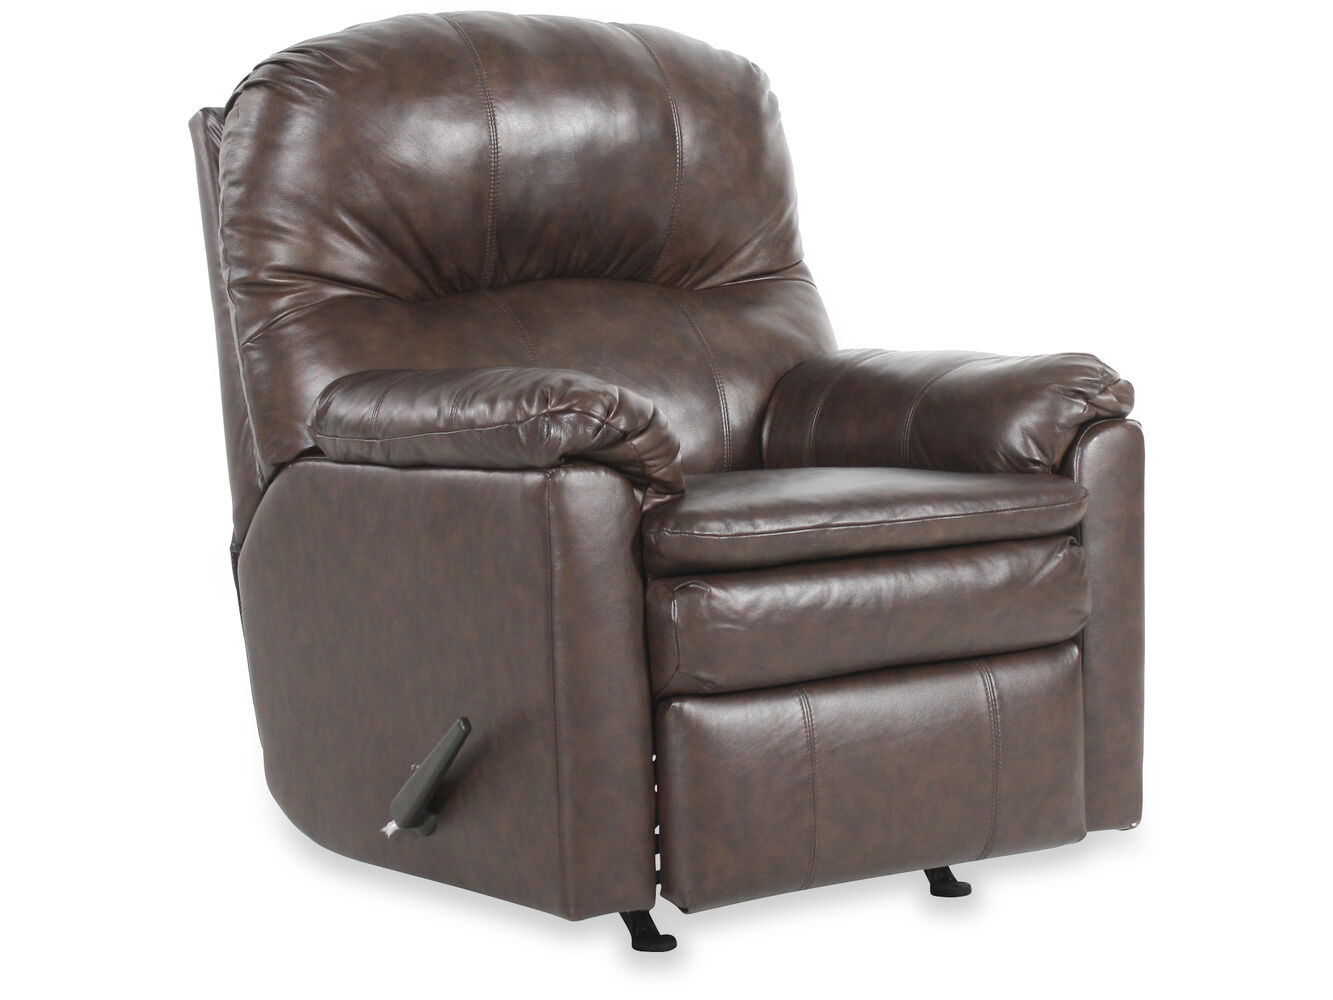 Lane Touchdown Rocker Recliner Mathis Brothers Furniture